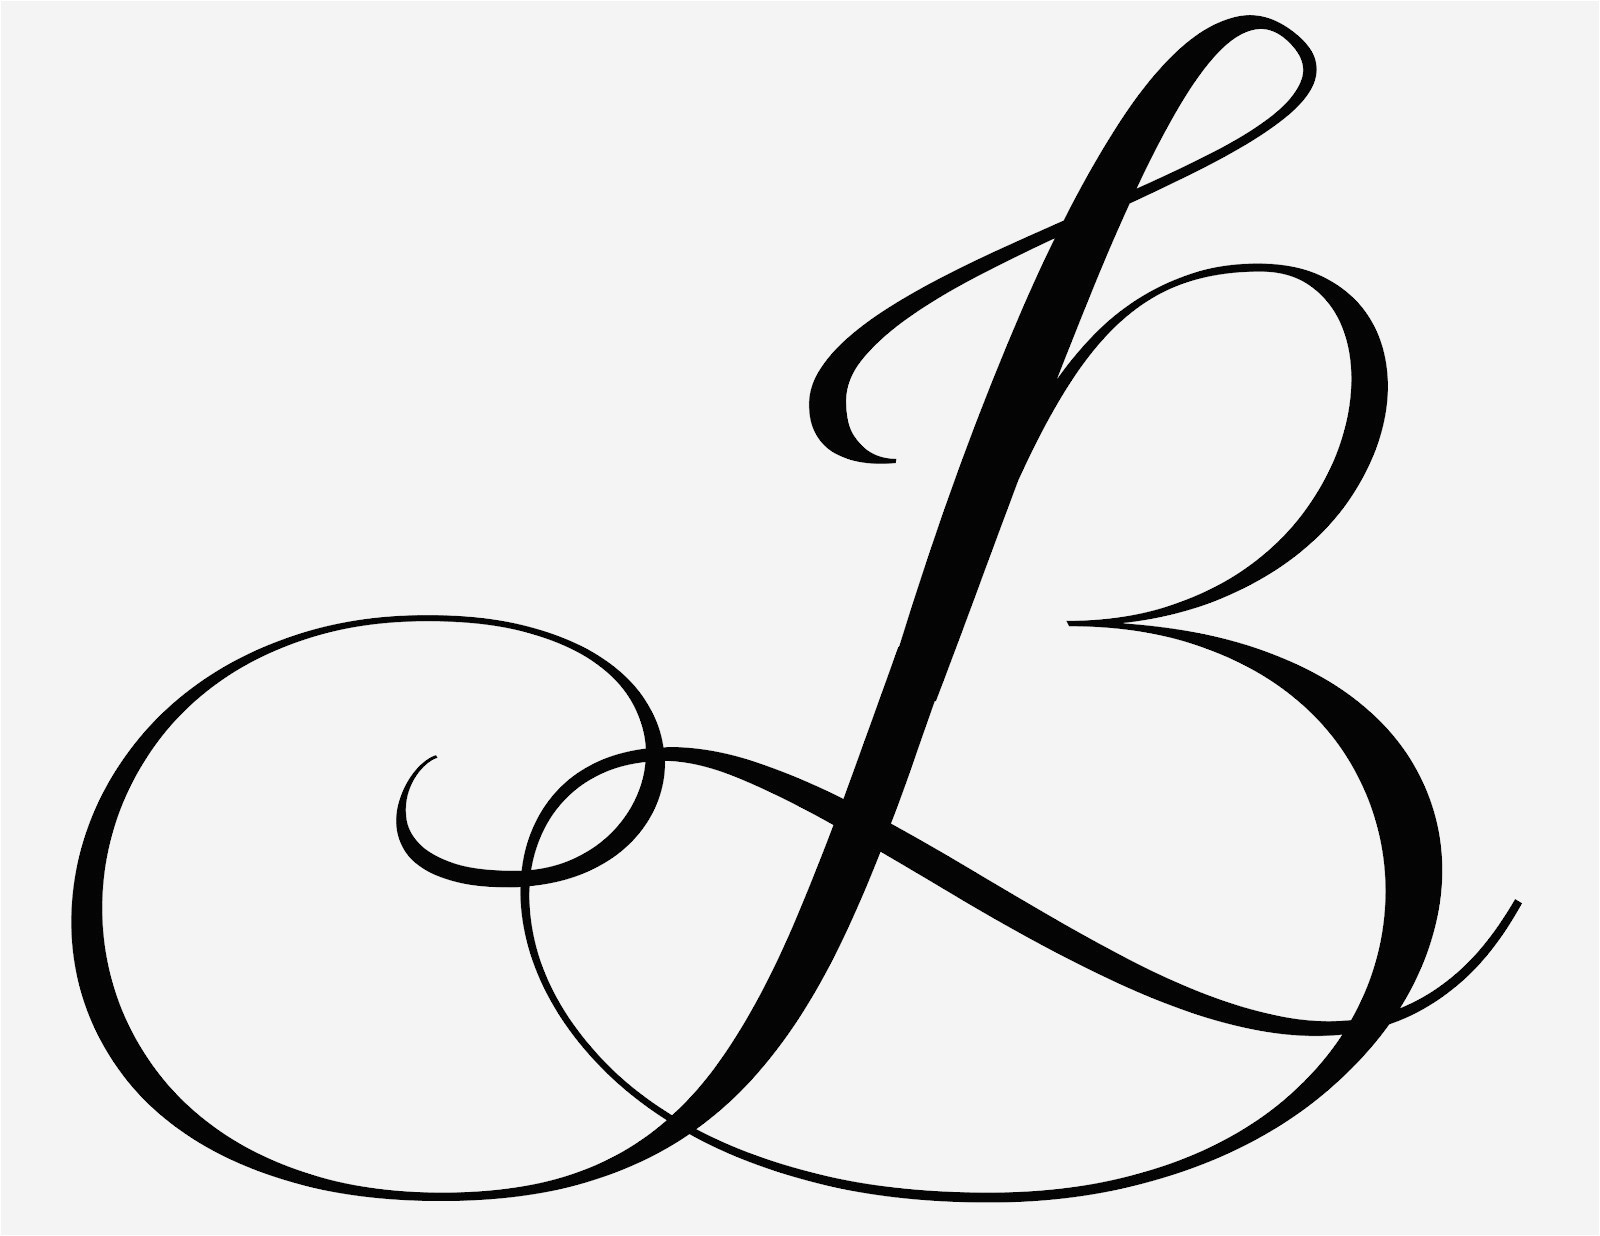 B clipart fancy. Cool letter designs new